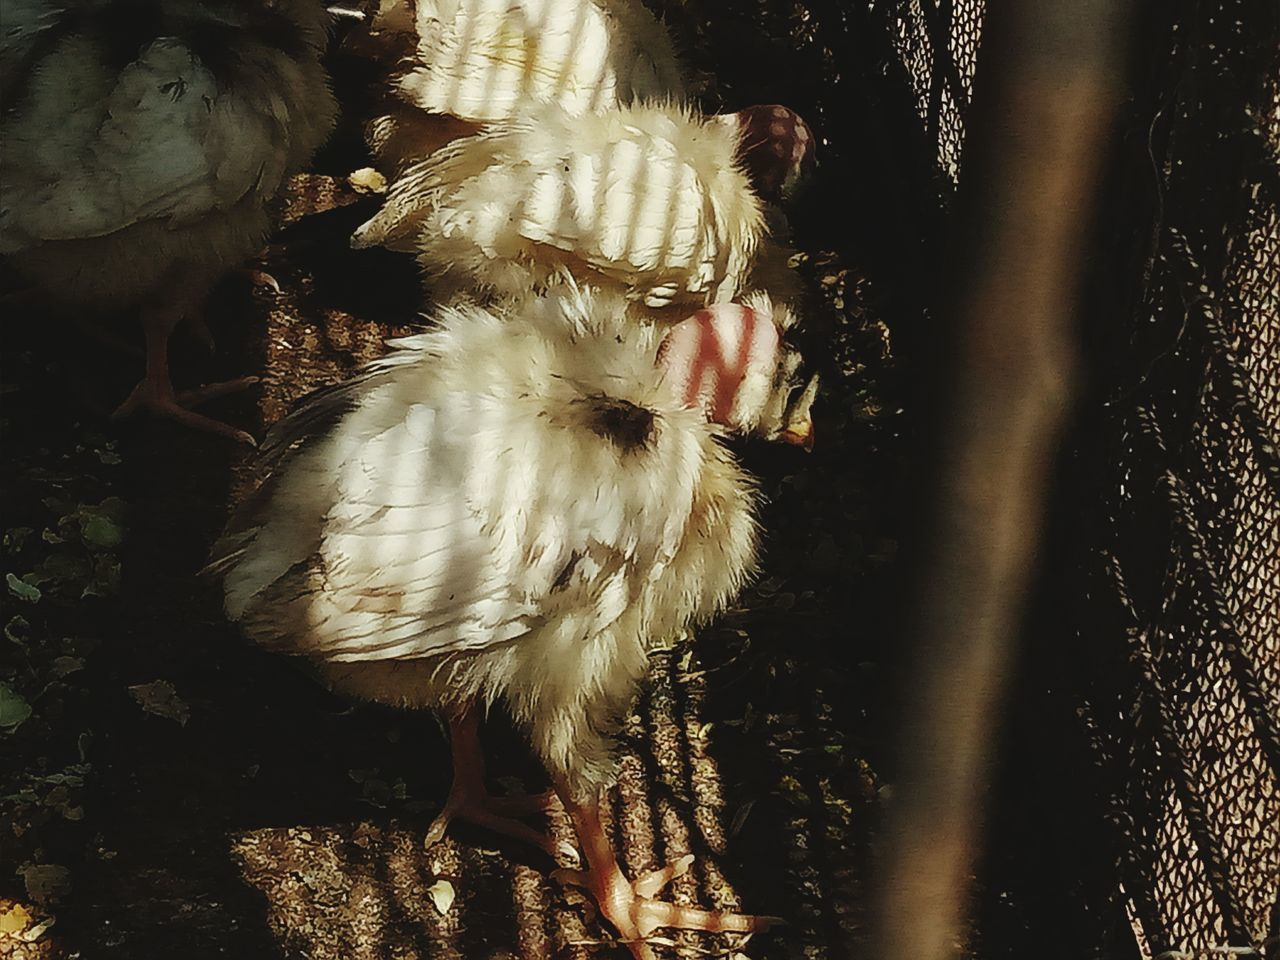 Chicks Chickens Hen Cute♡ Breeding Feeding  Bunch Life Lifestyles Love Bald Bald Hen Fur Cage Long Goodbye EyeEmNewHere EyeEm Diversity The Secret Spaces Resist Live For The Story BYOPaper! The Great Outdoors - 2017 EyeEm Awards Visual Feast